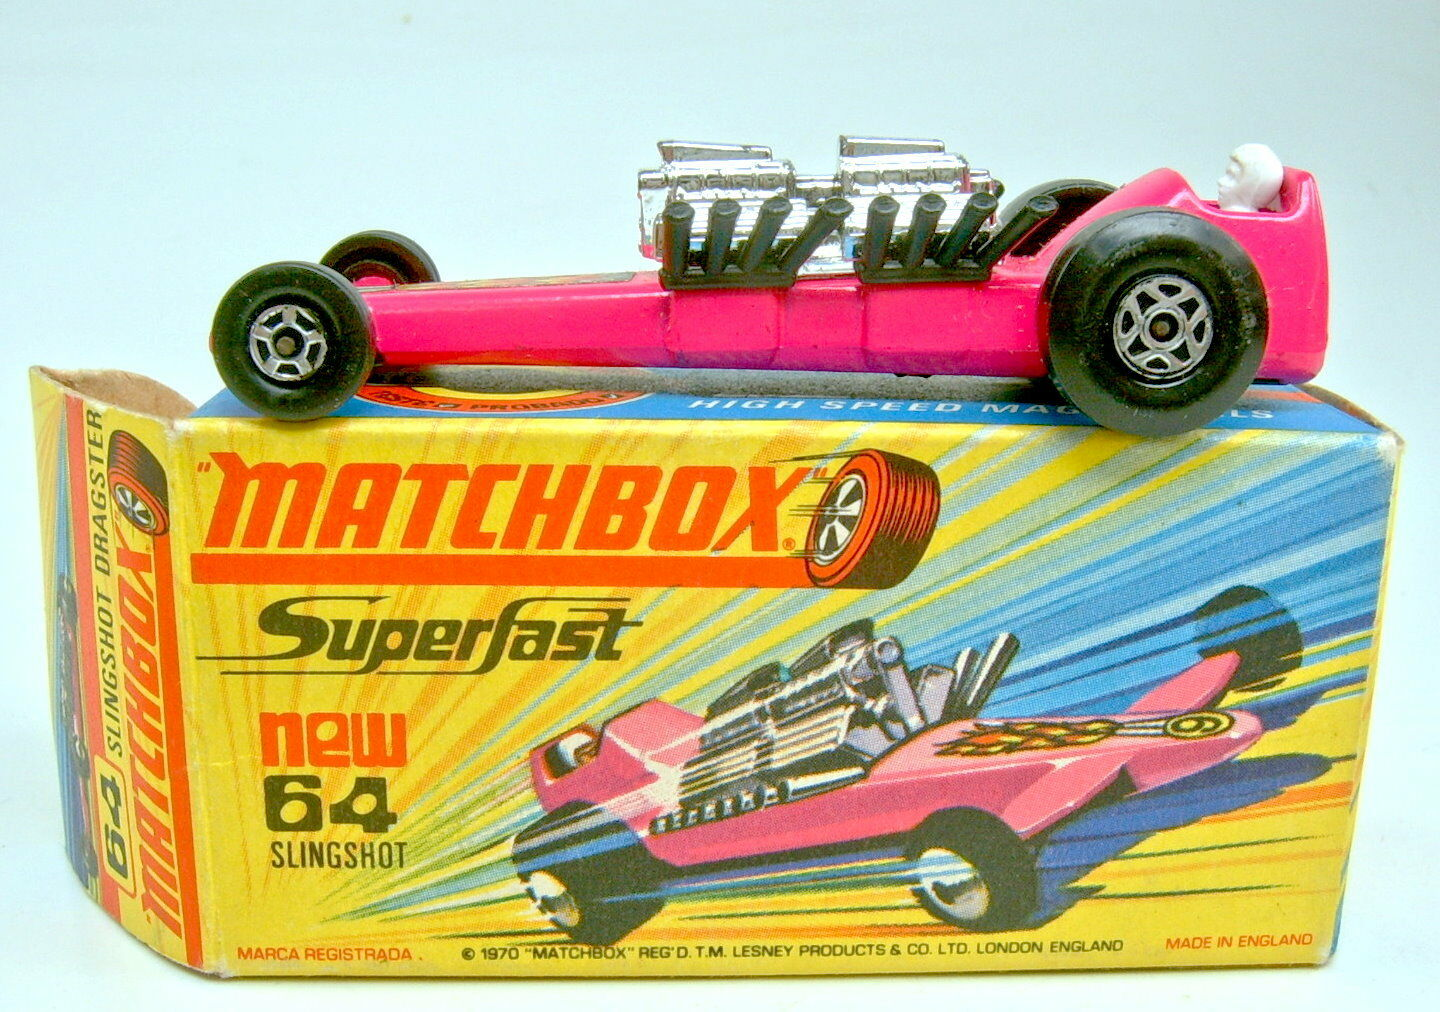 MATCHBOX superfast Nº 64b slingshot  Dragster Hot rose top dans Box  le plus en vogue